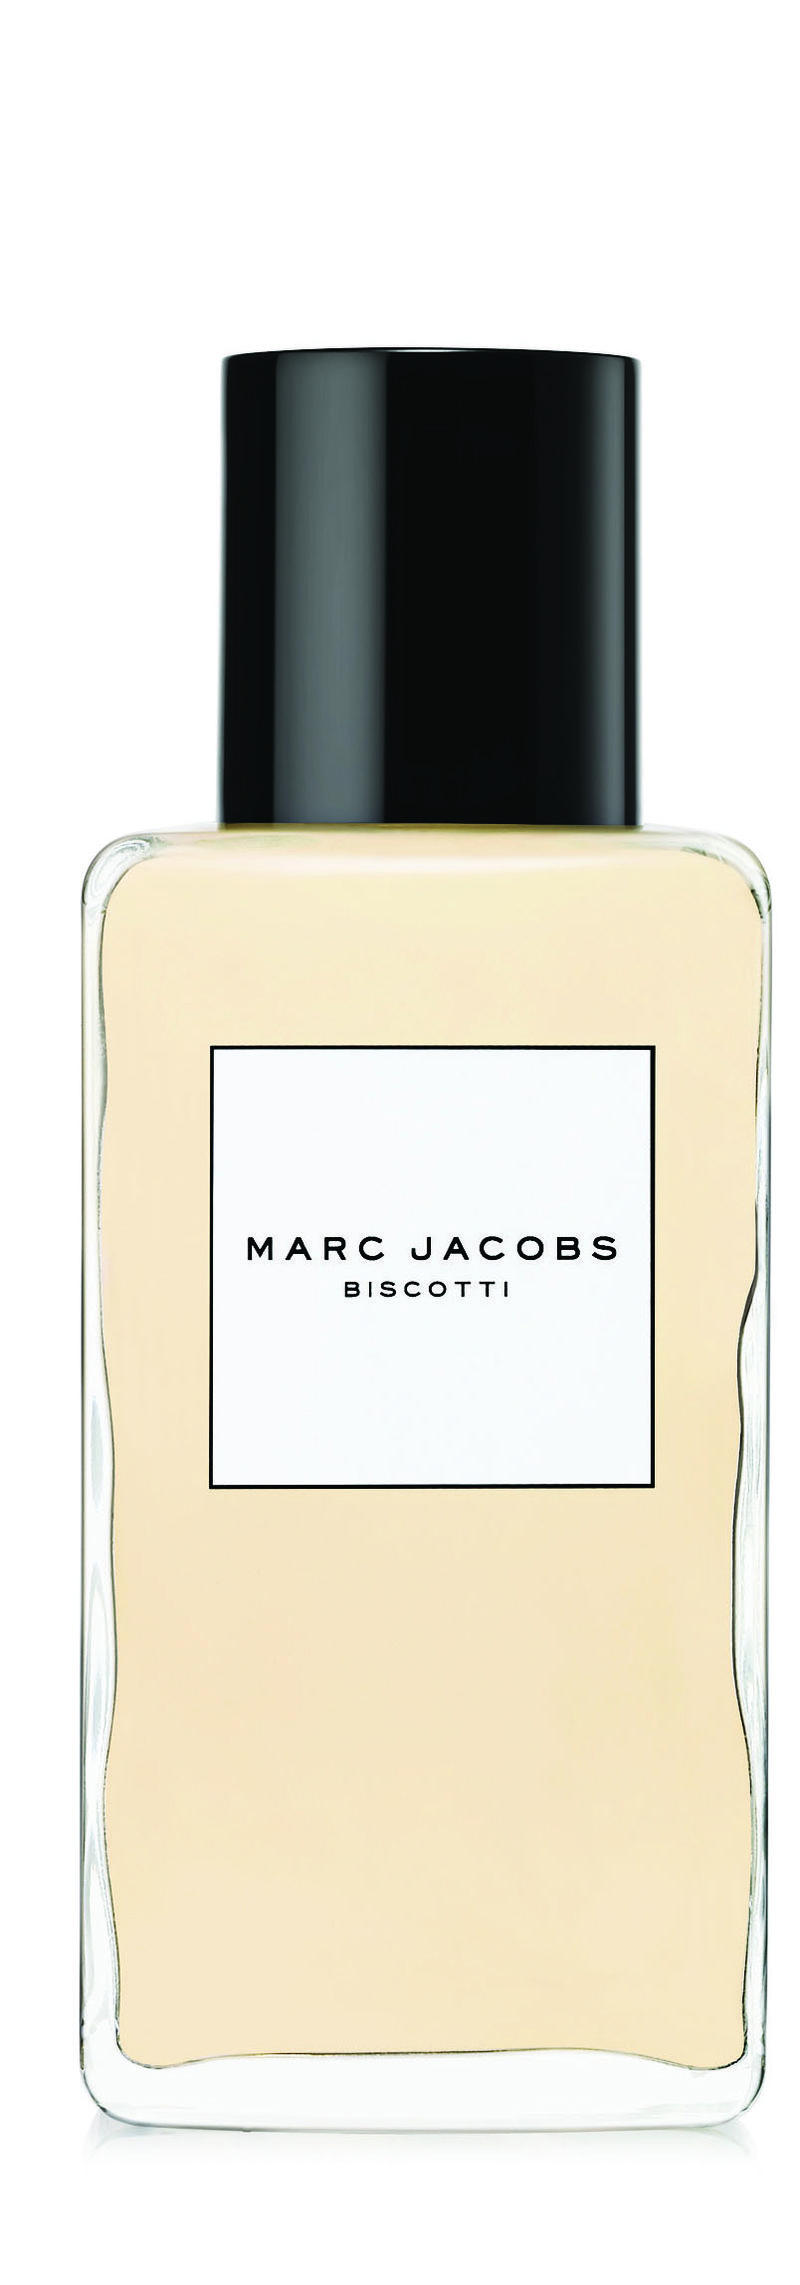 Ctmj05.3-marc-jacobs-biscotti-bottle